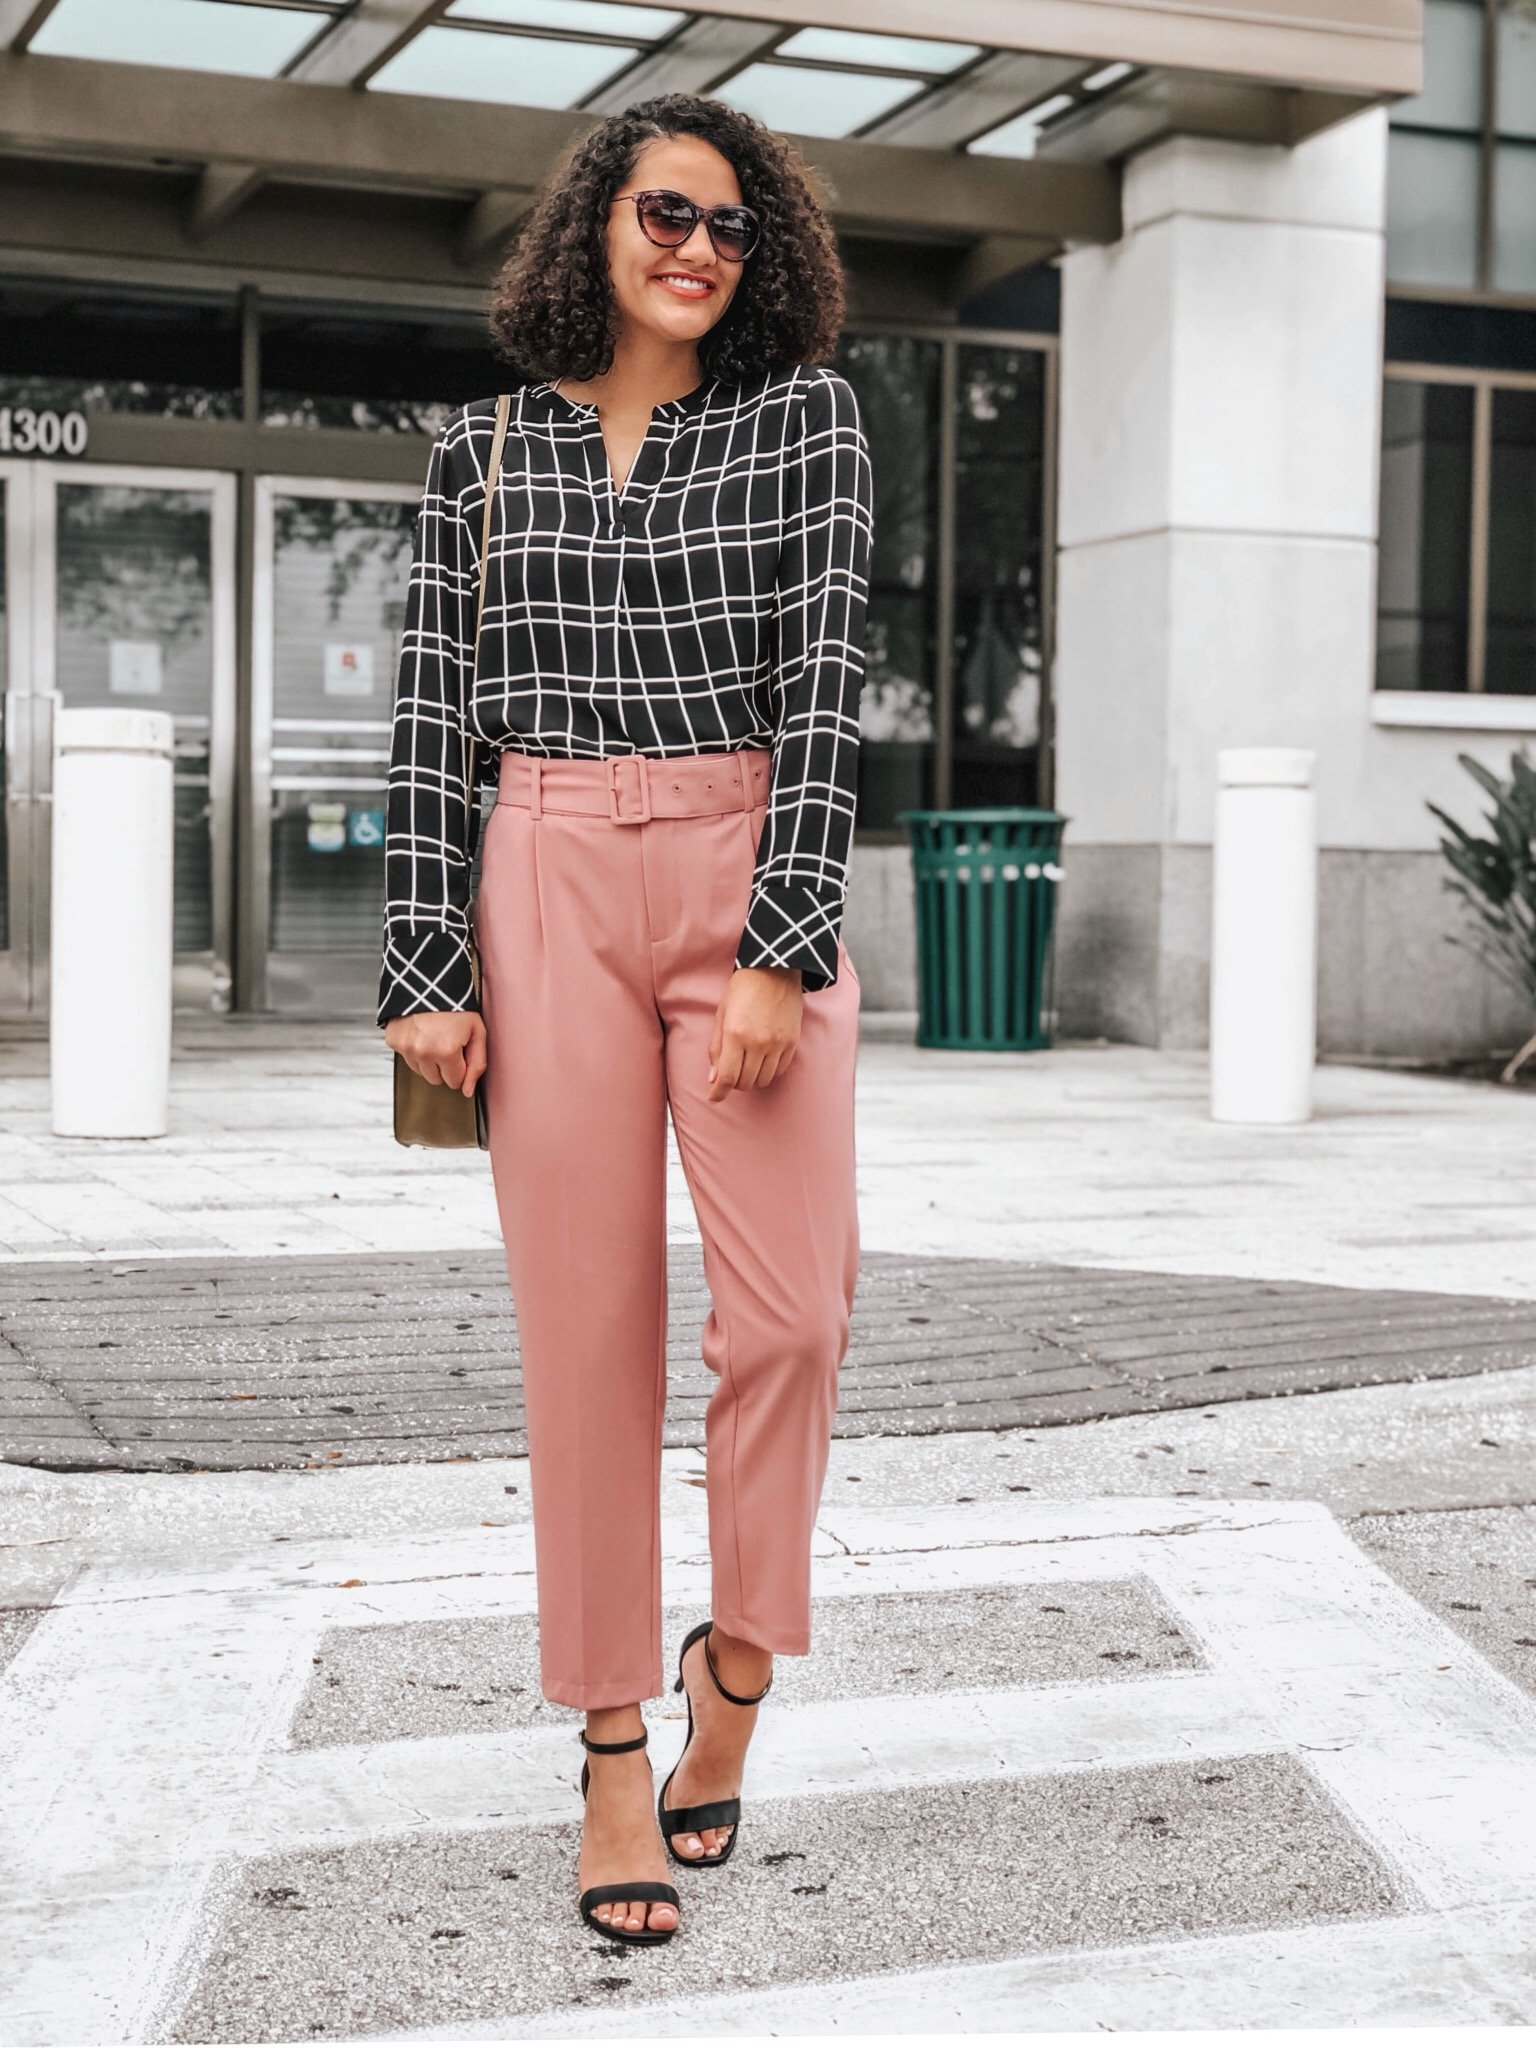 Grid print blouse, pink belted dress pants, black heels, sunglasses, and a saddle bag.